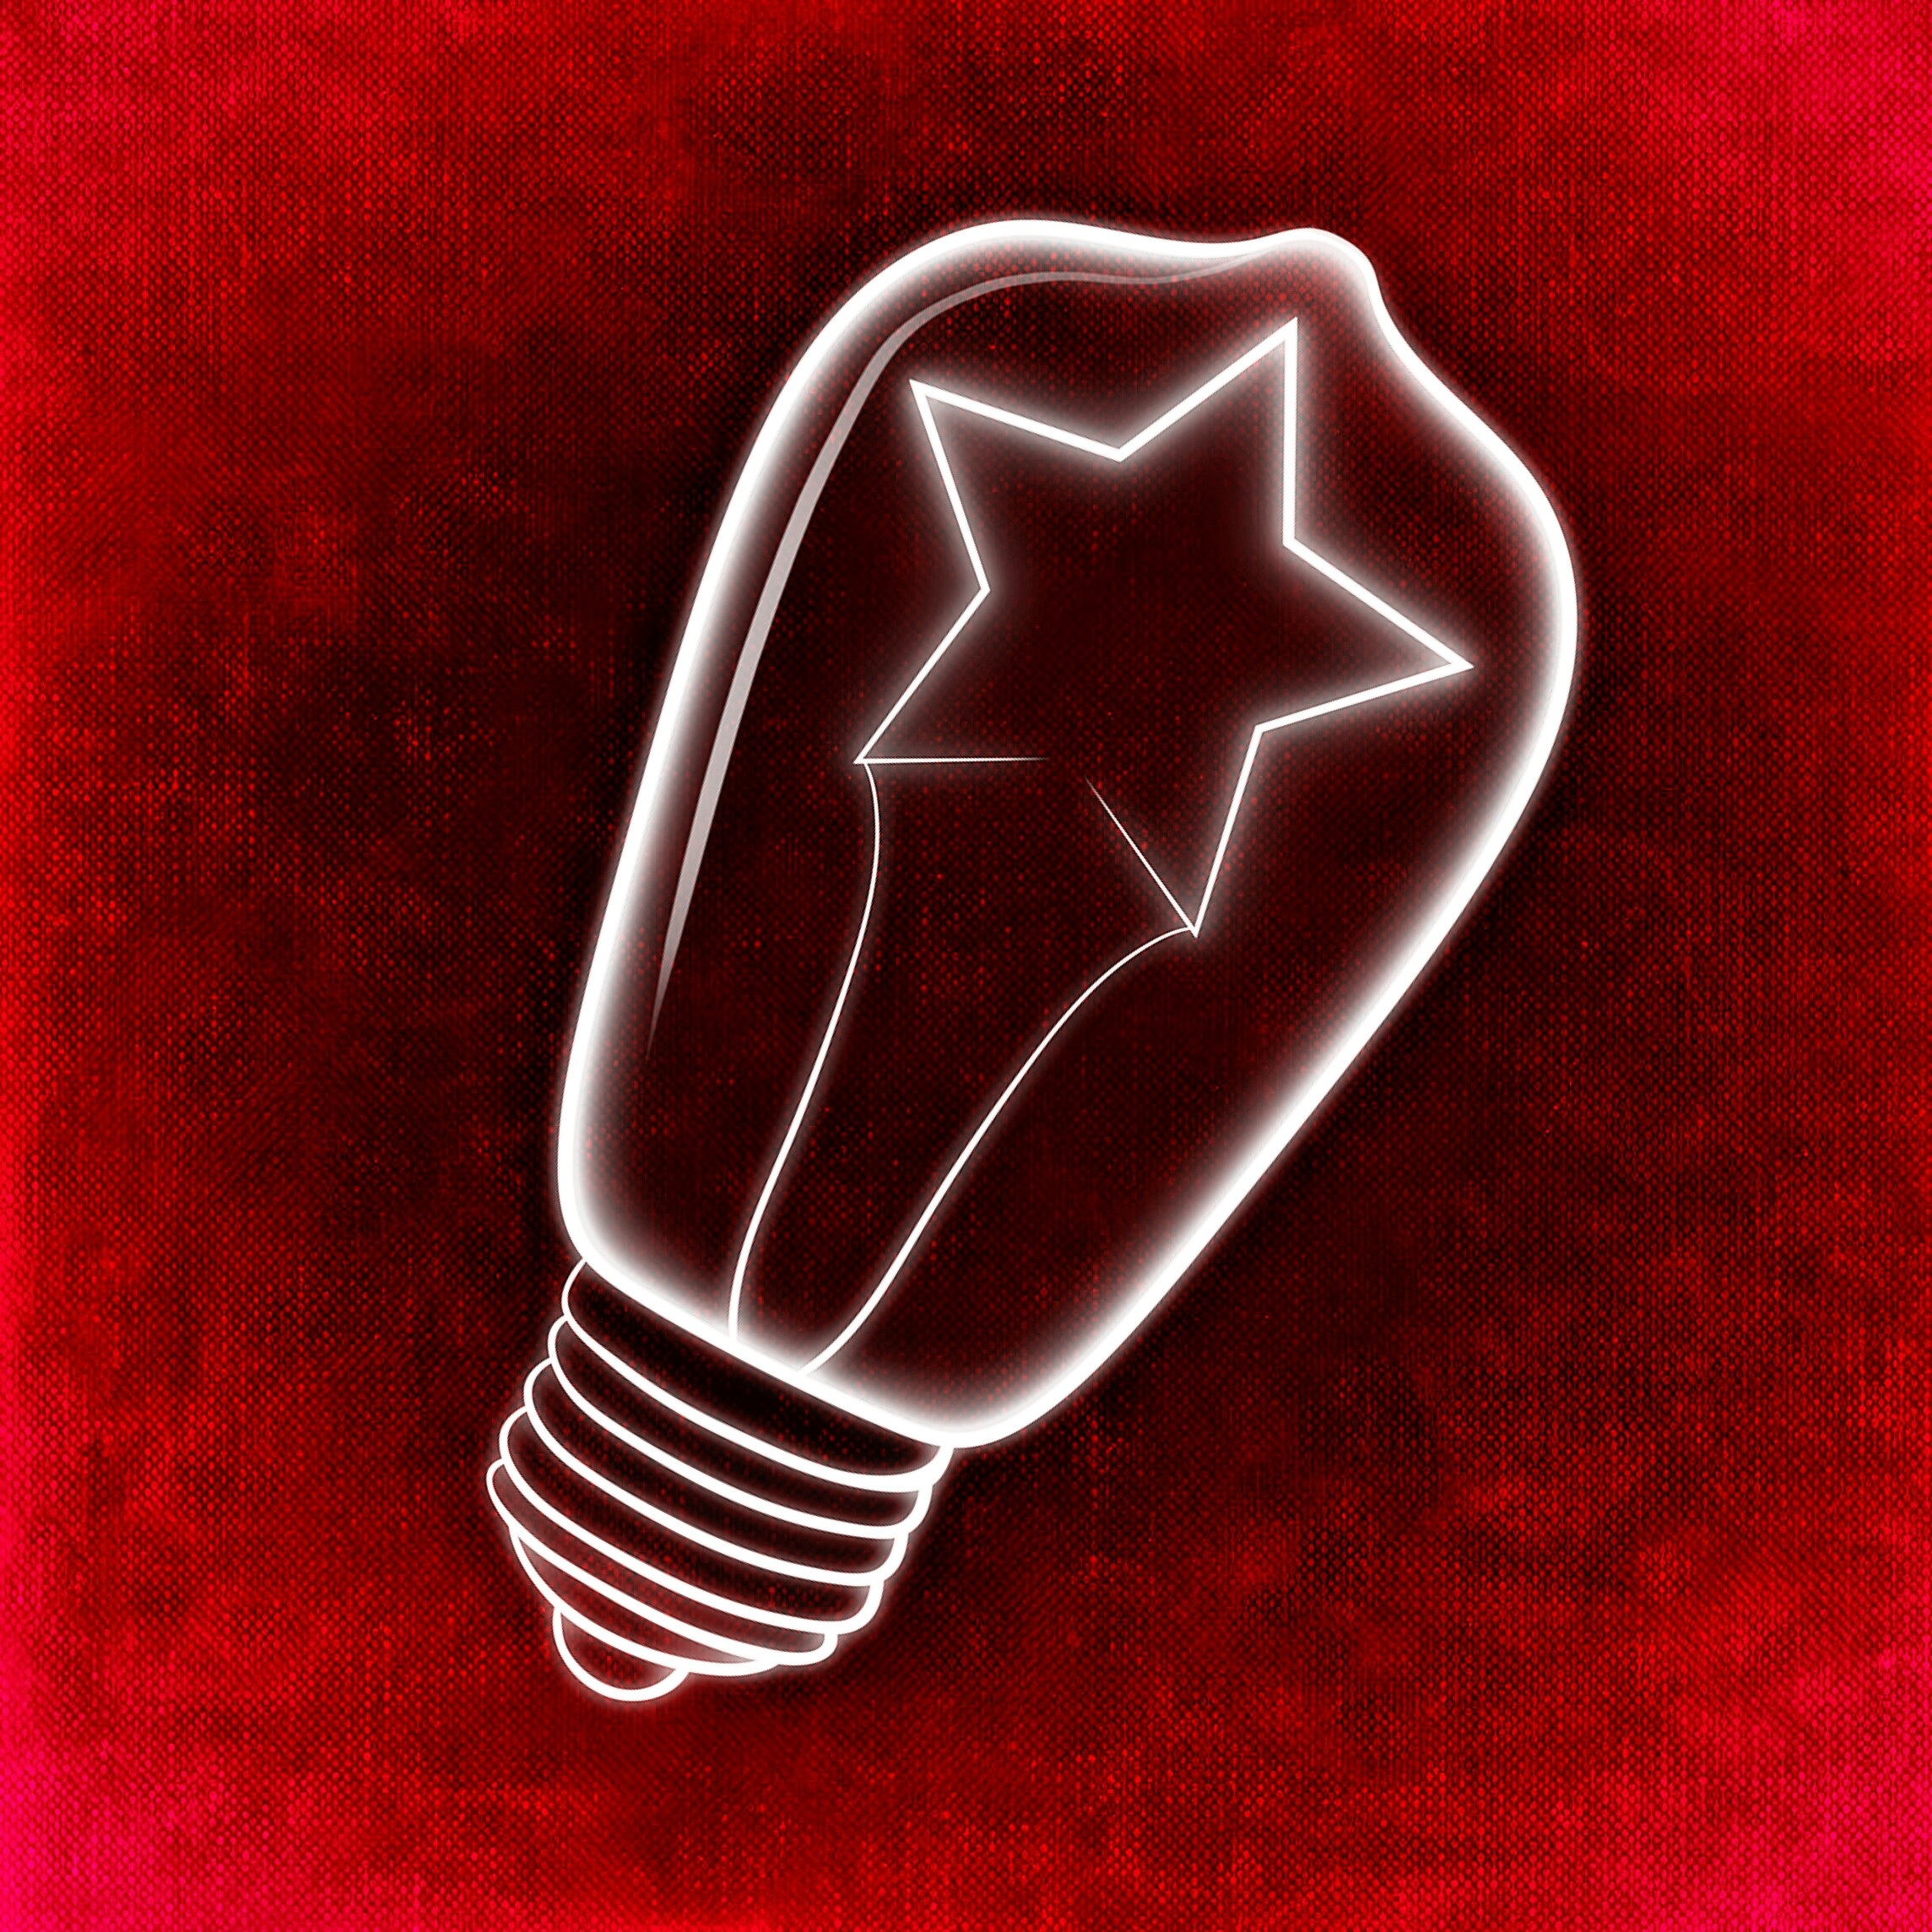 Drawn Symbol Of Creativity On A Red Background Free Image